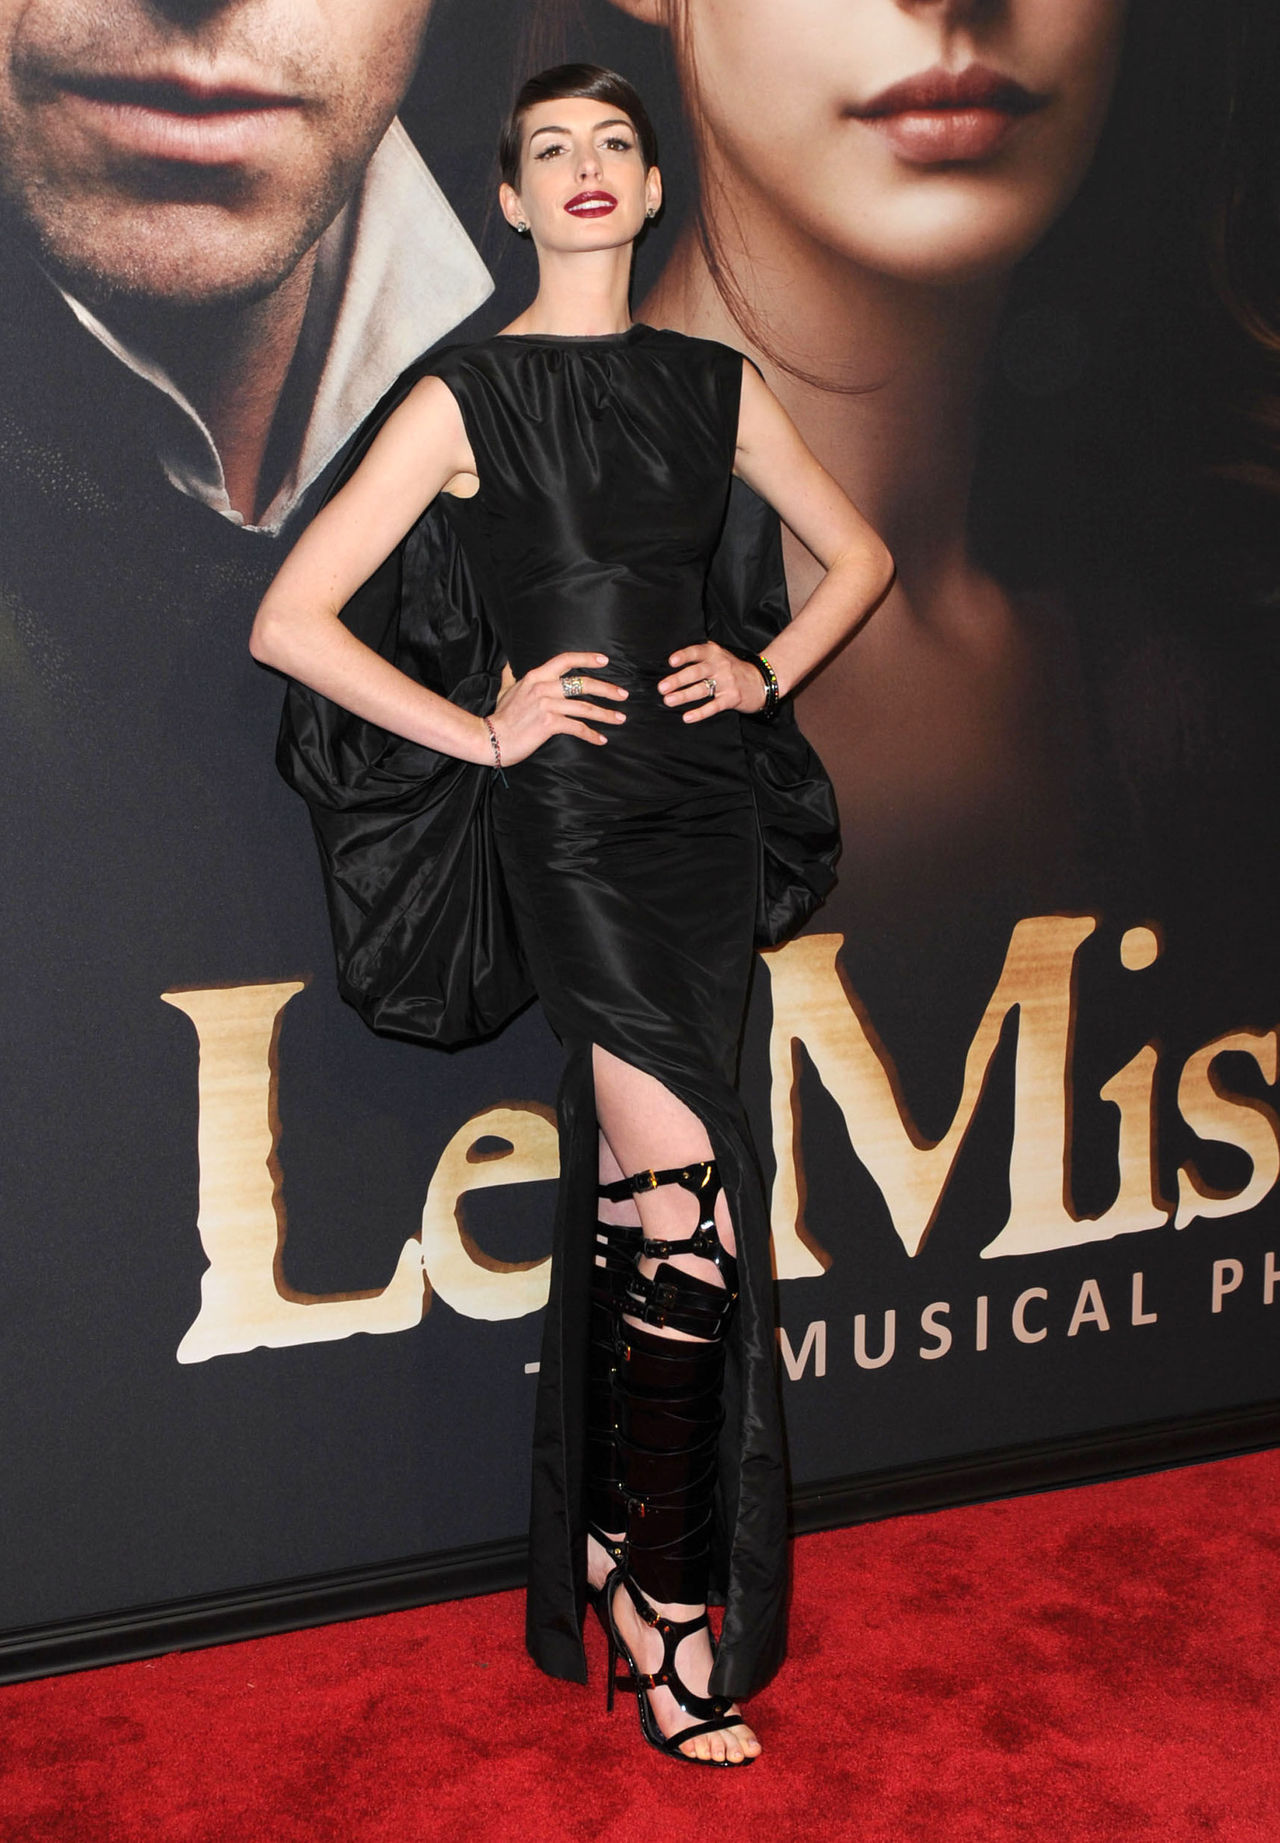 Anne Hathaway (in Tom Ford) at the NYC premiere of Les Miserables, December 10th